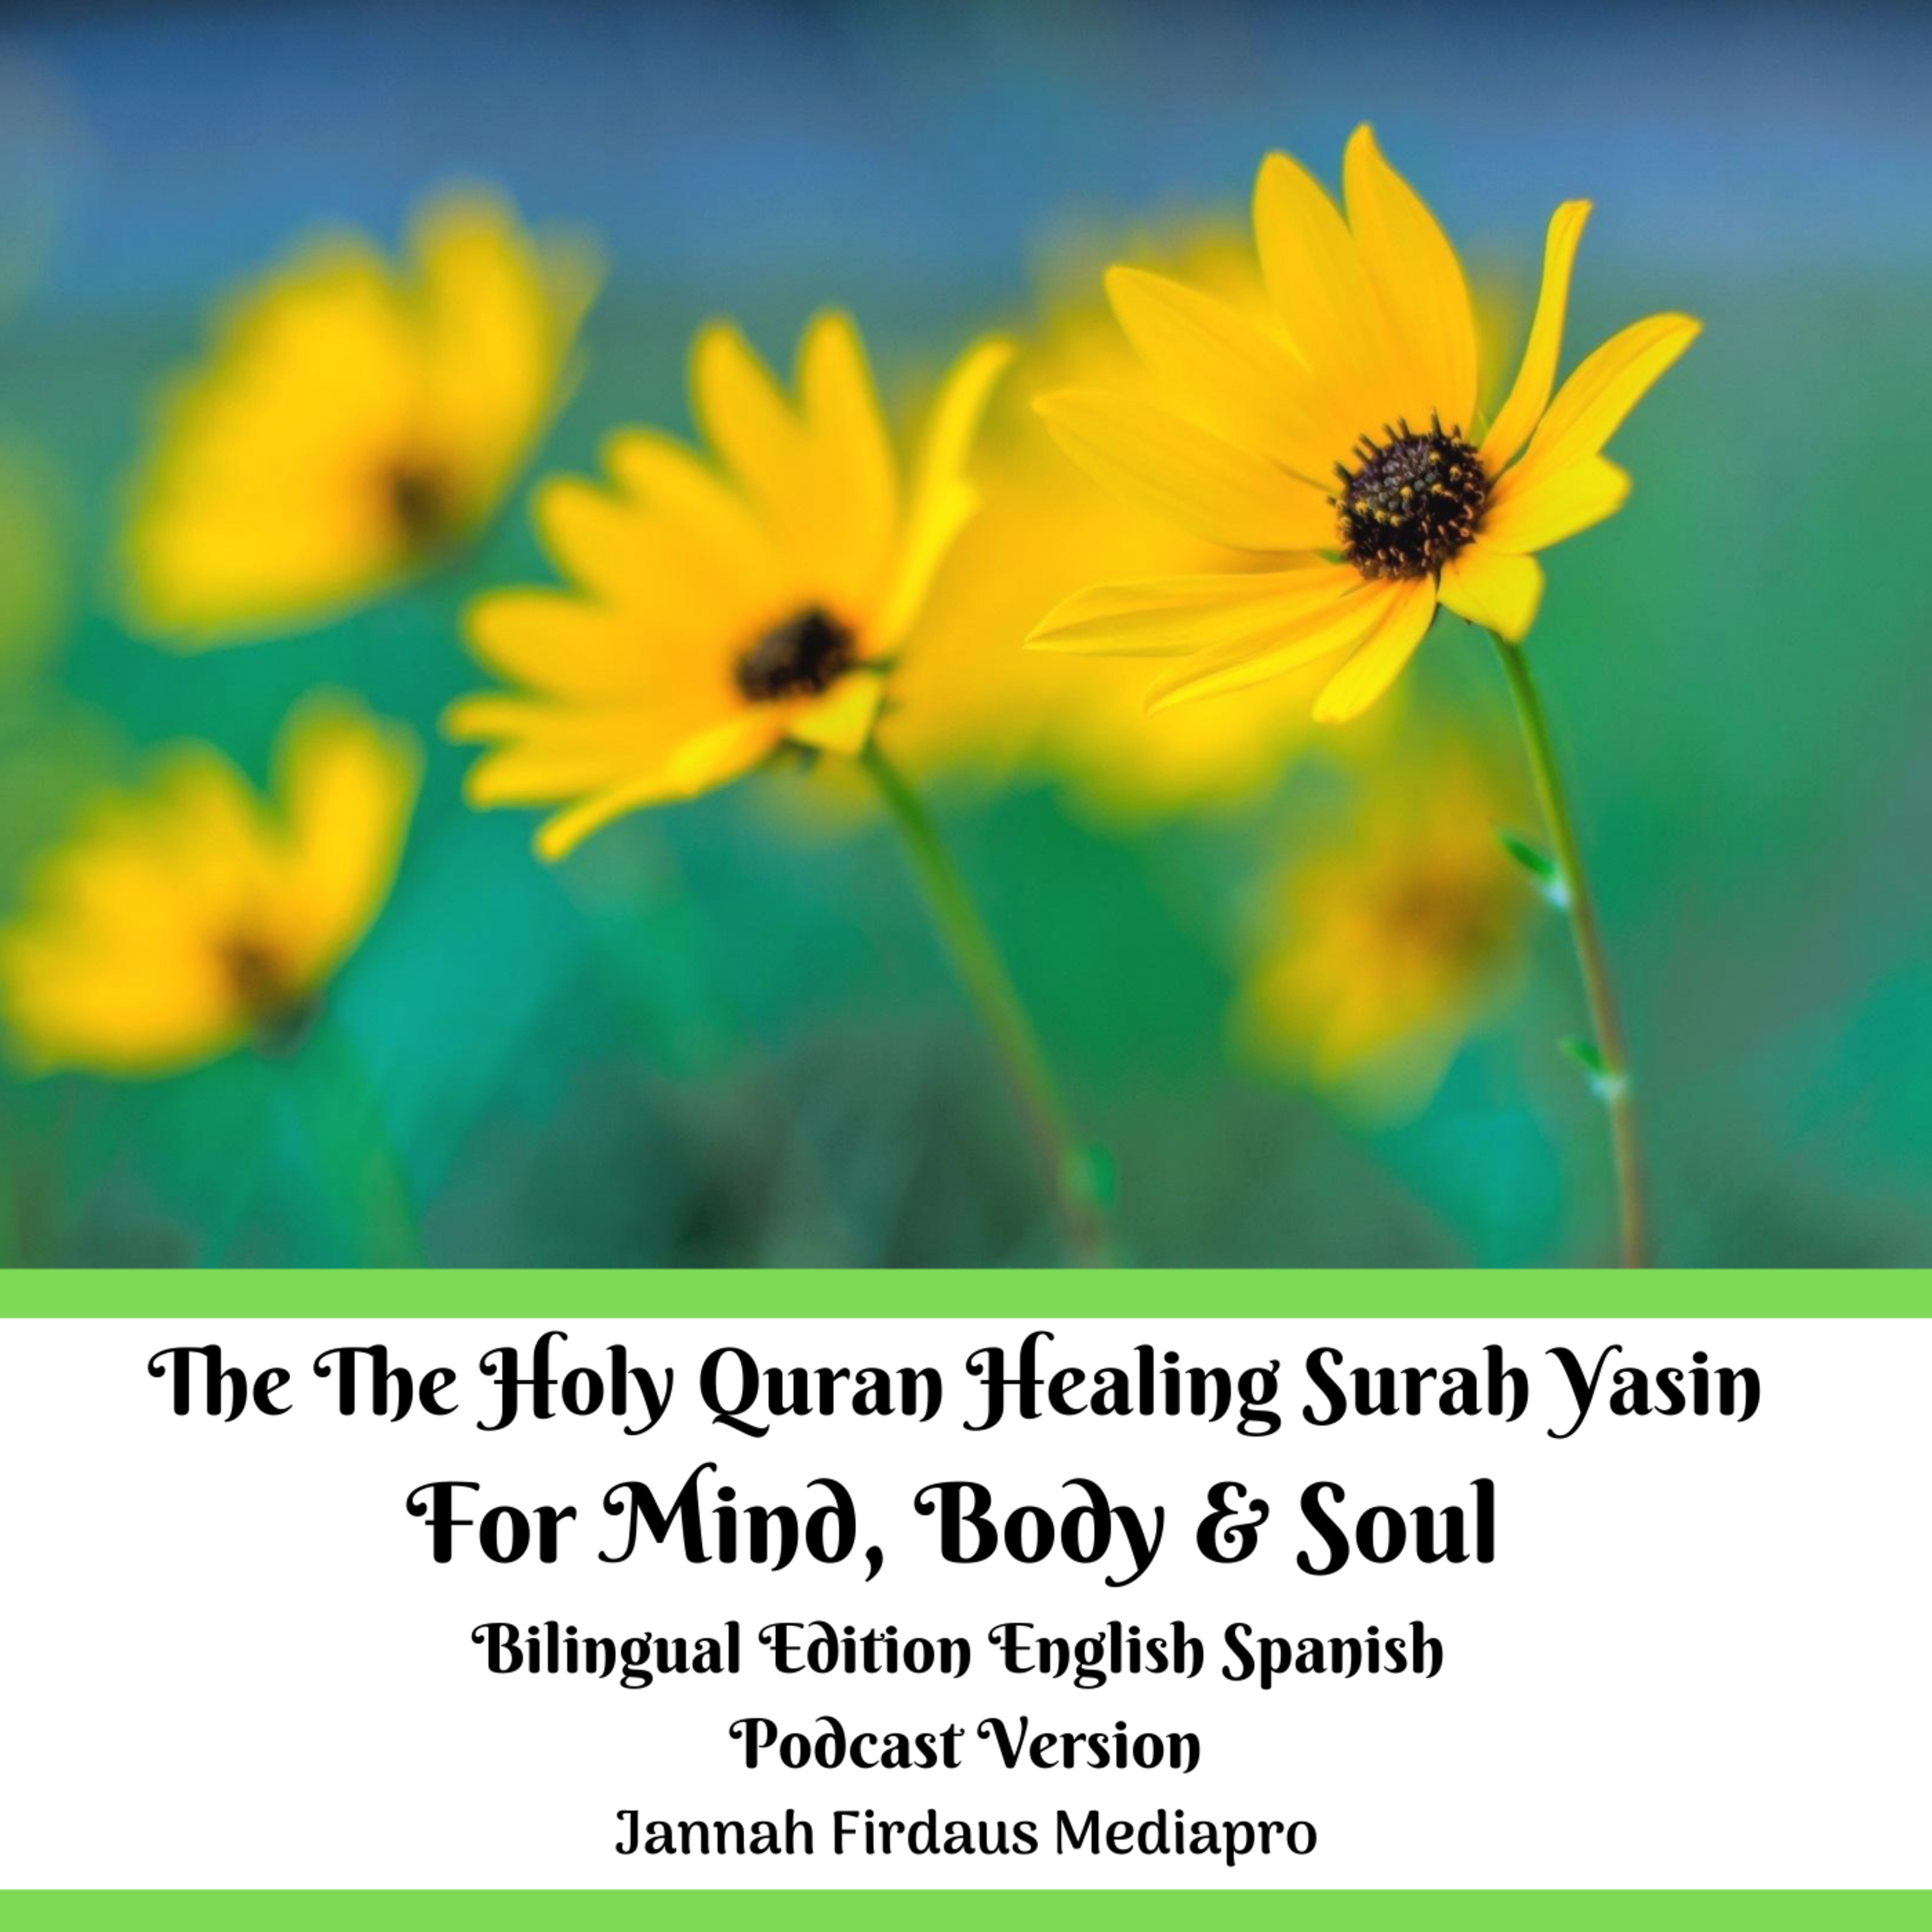 The Holy Quran Healing Surah Yasin For Mind, Body & Soul Bilingual Edition English Spanish Podcast Version